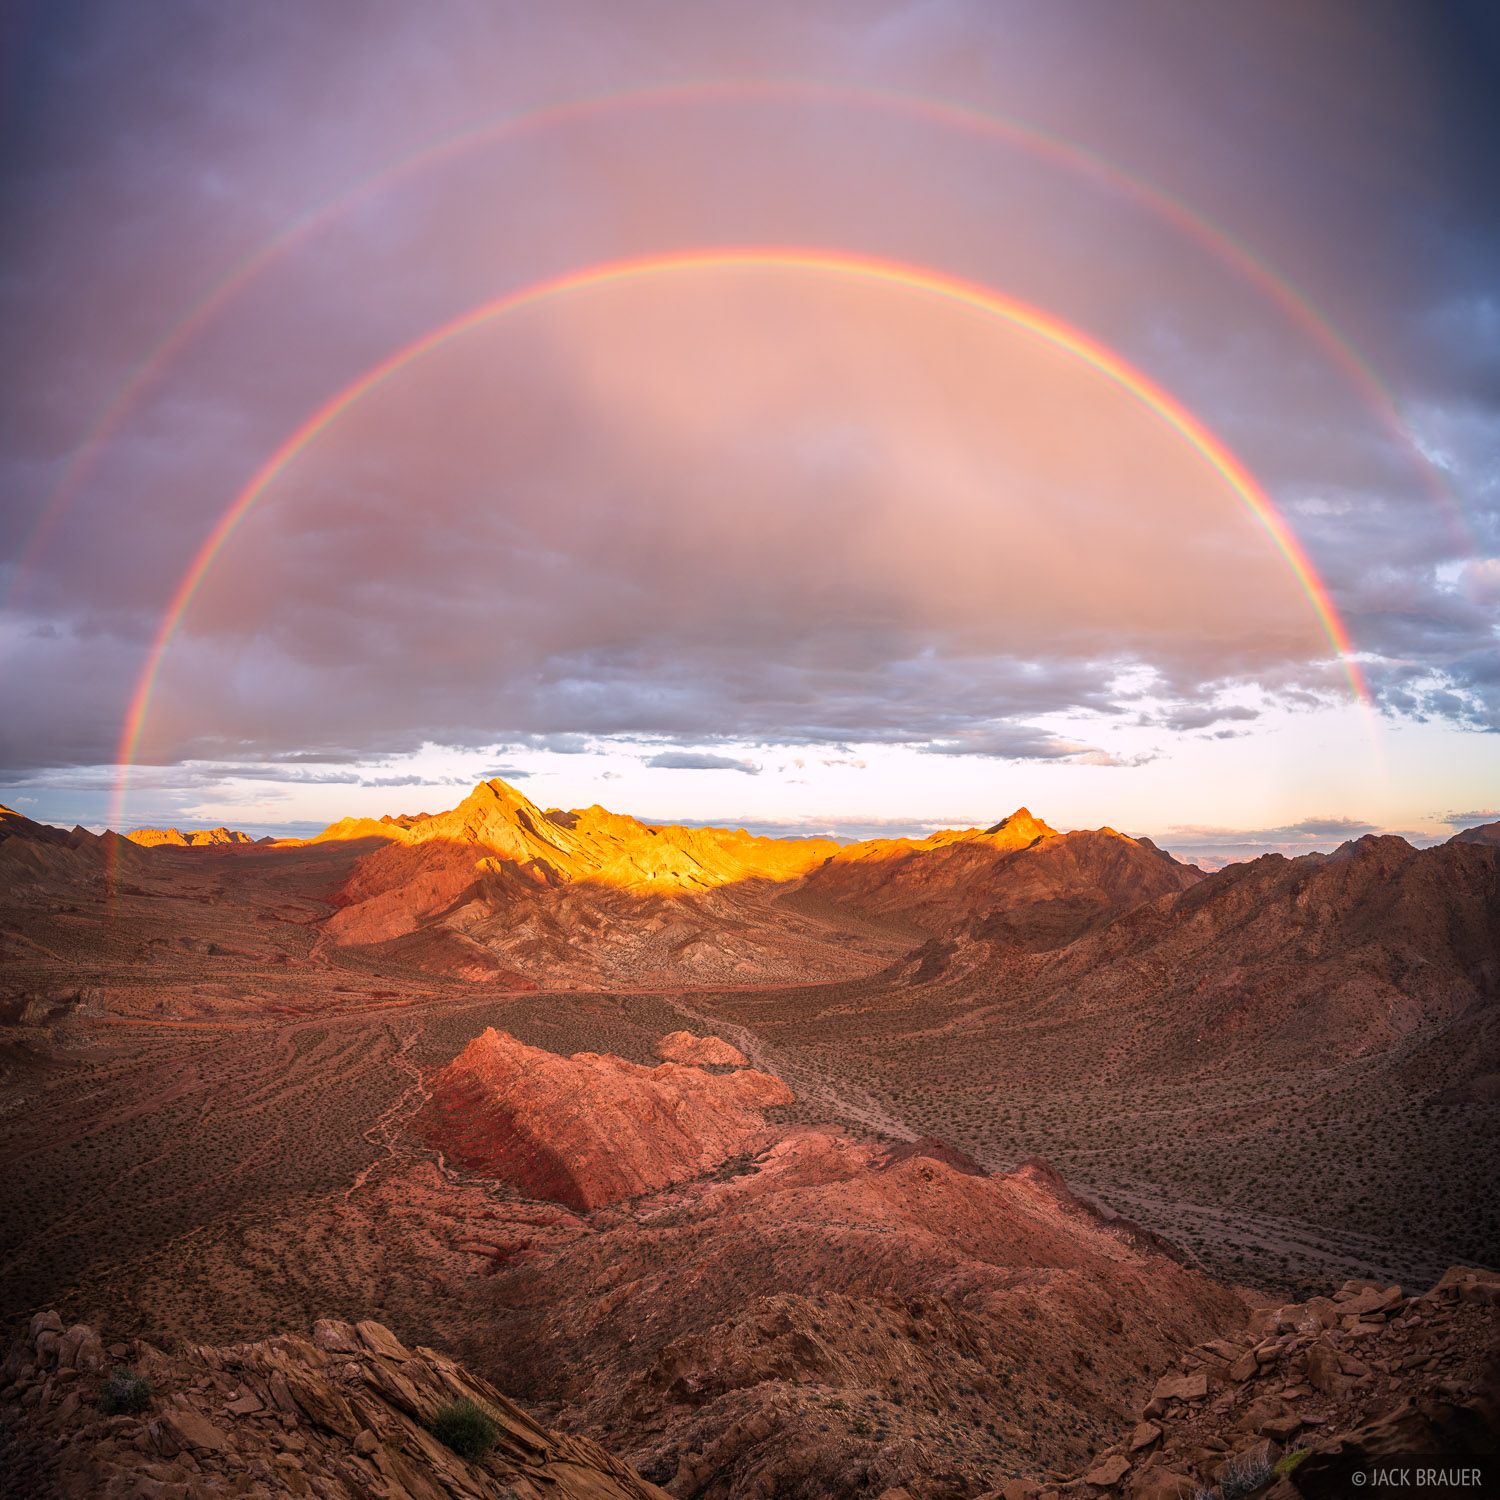 A spectacular double rainbow over the Pinto Valley in the Pinto Valley Wilderness of Nevada.